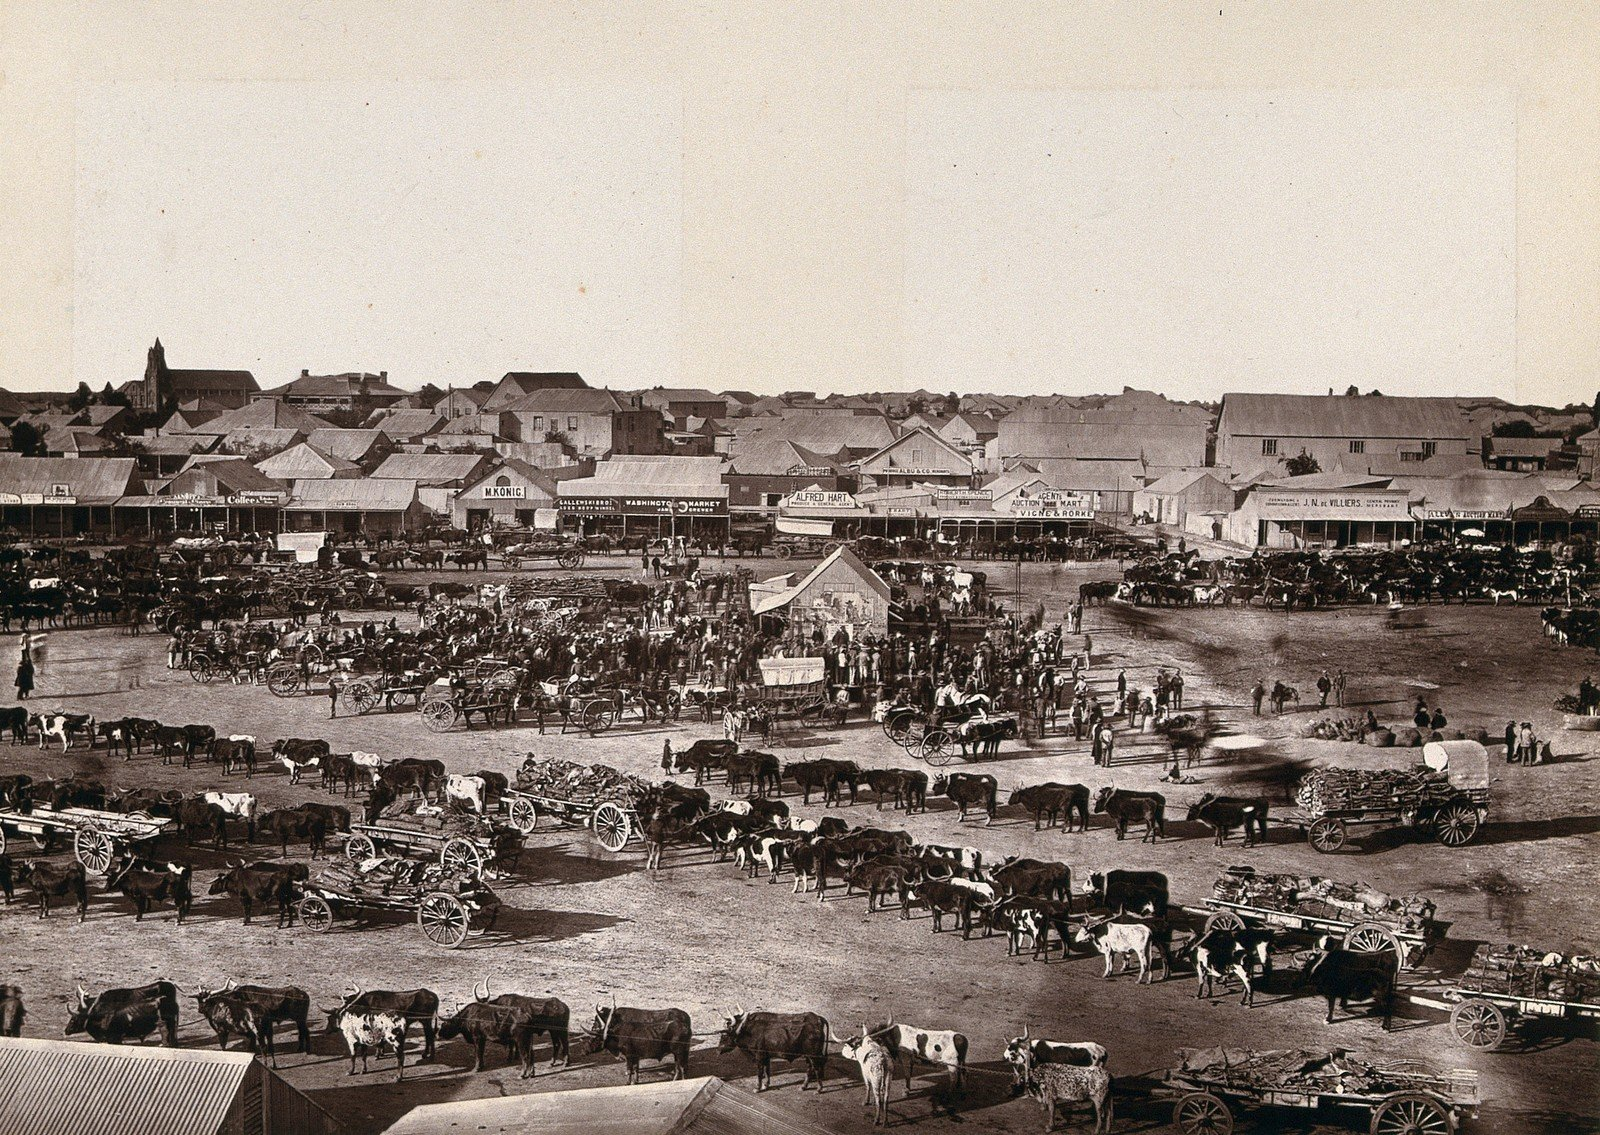 Market in Kimberley (South Africa), 1888 (Woodburytype after), Robert Harris, Wellcome Collection, CC BY